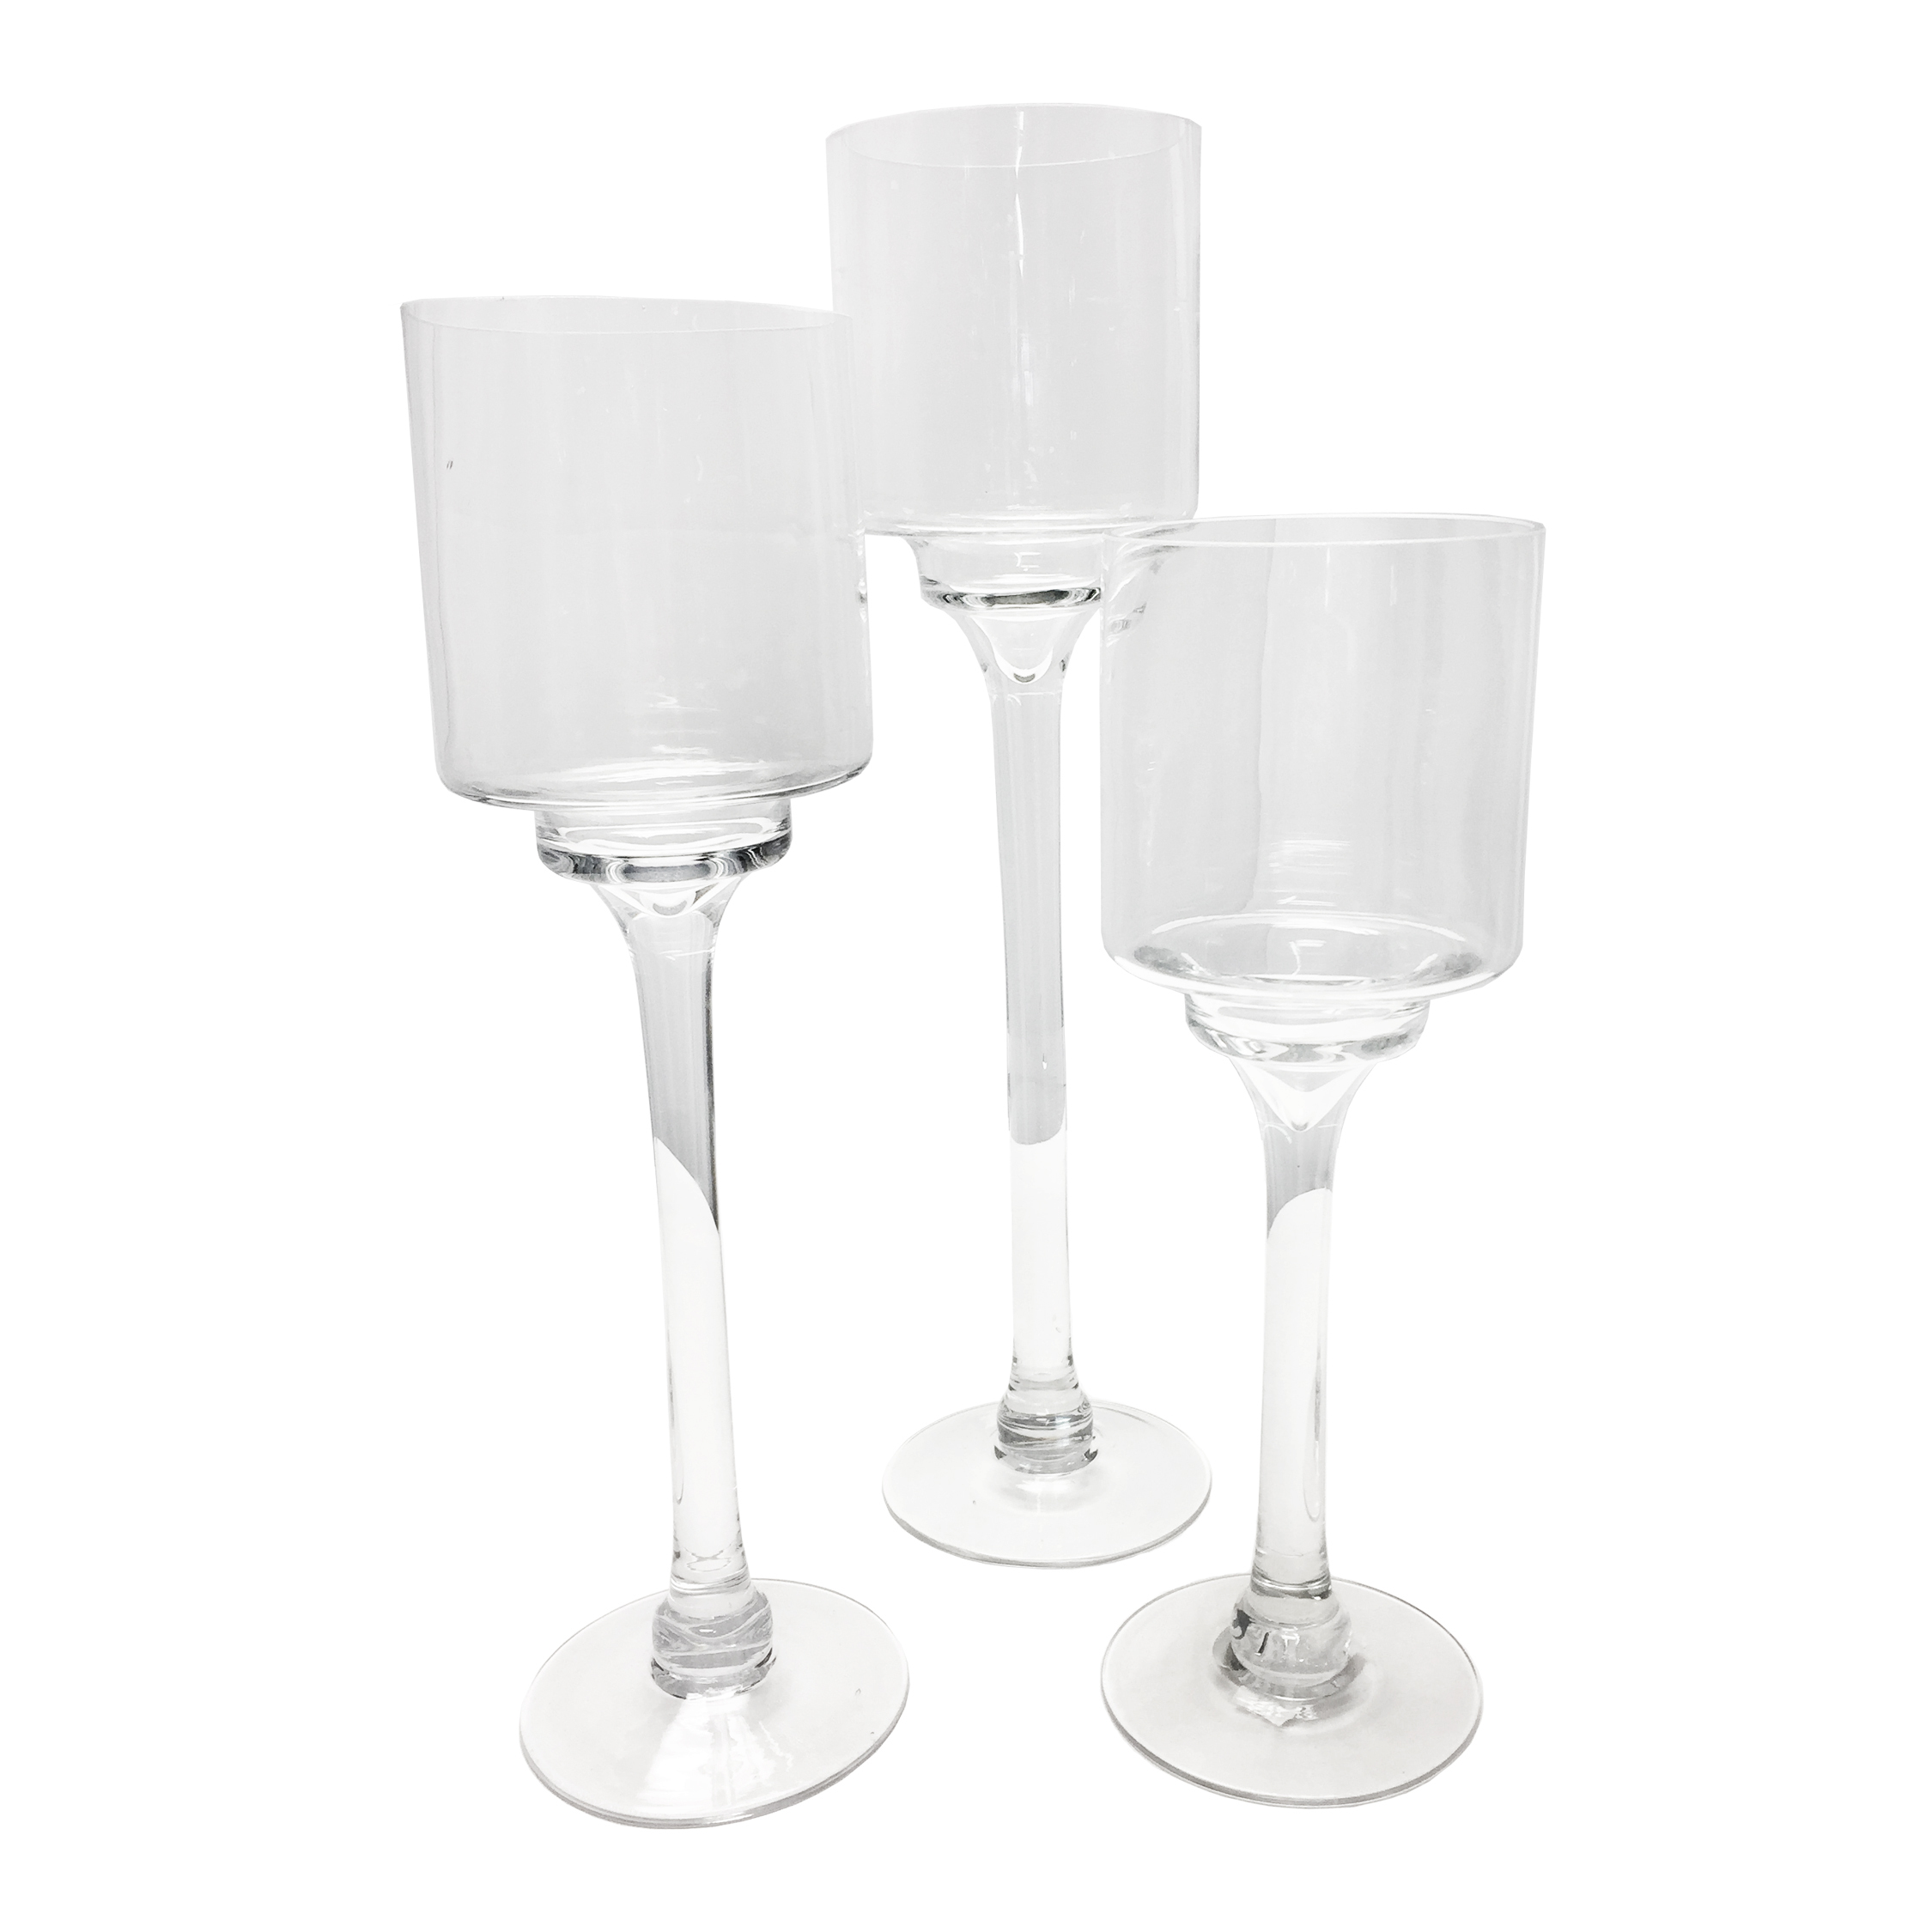 Glass Long-stem Candle Holders Rental Glass Long-stem Candle Holders Rental